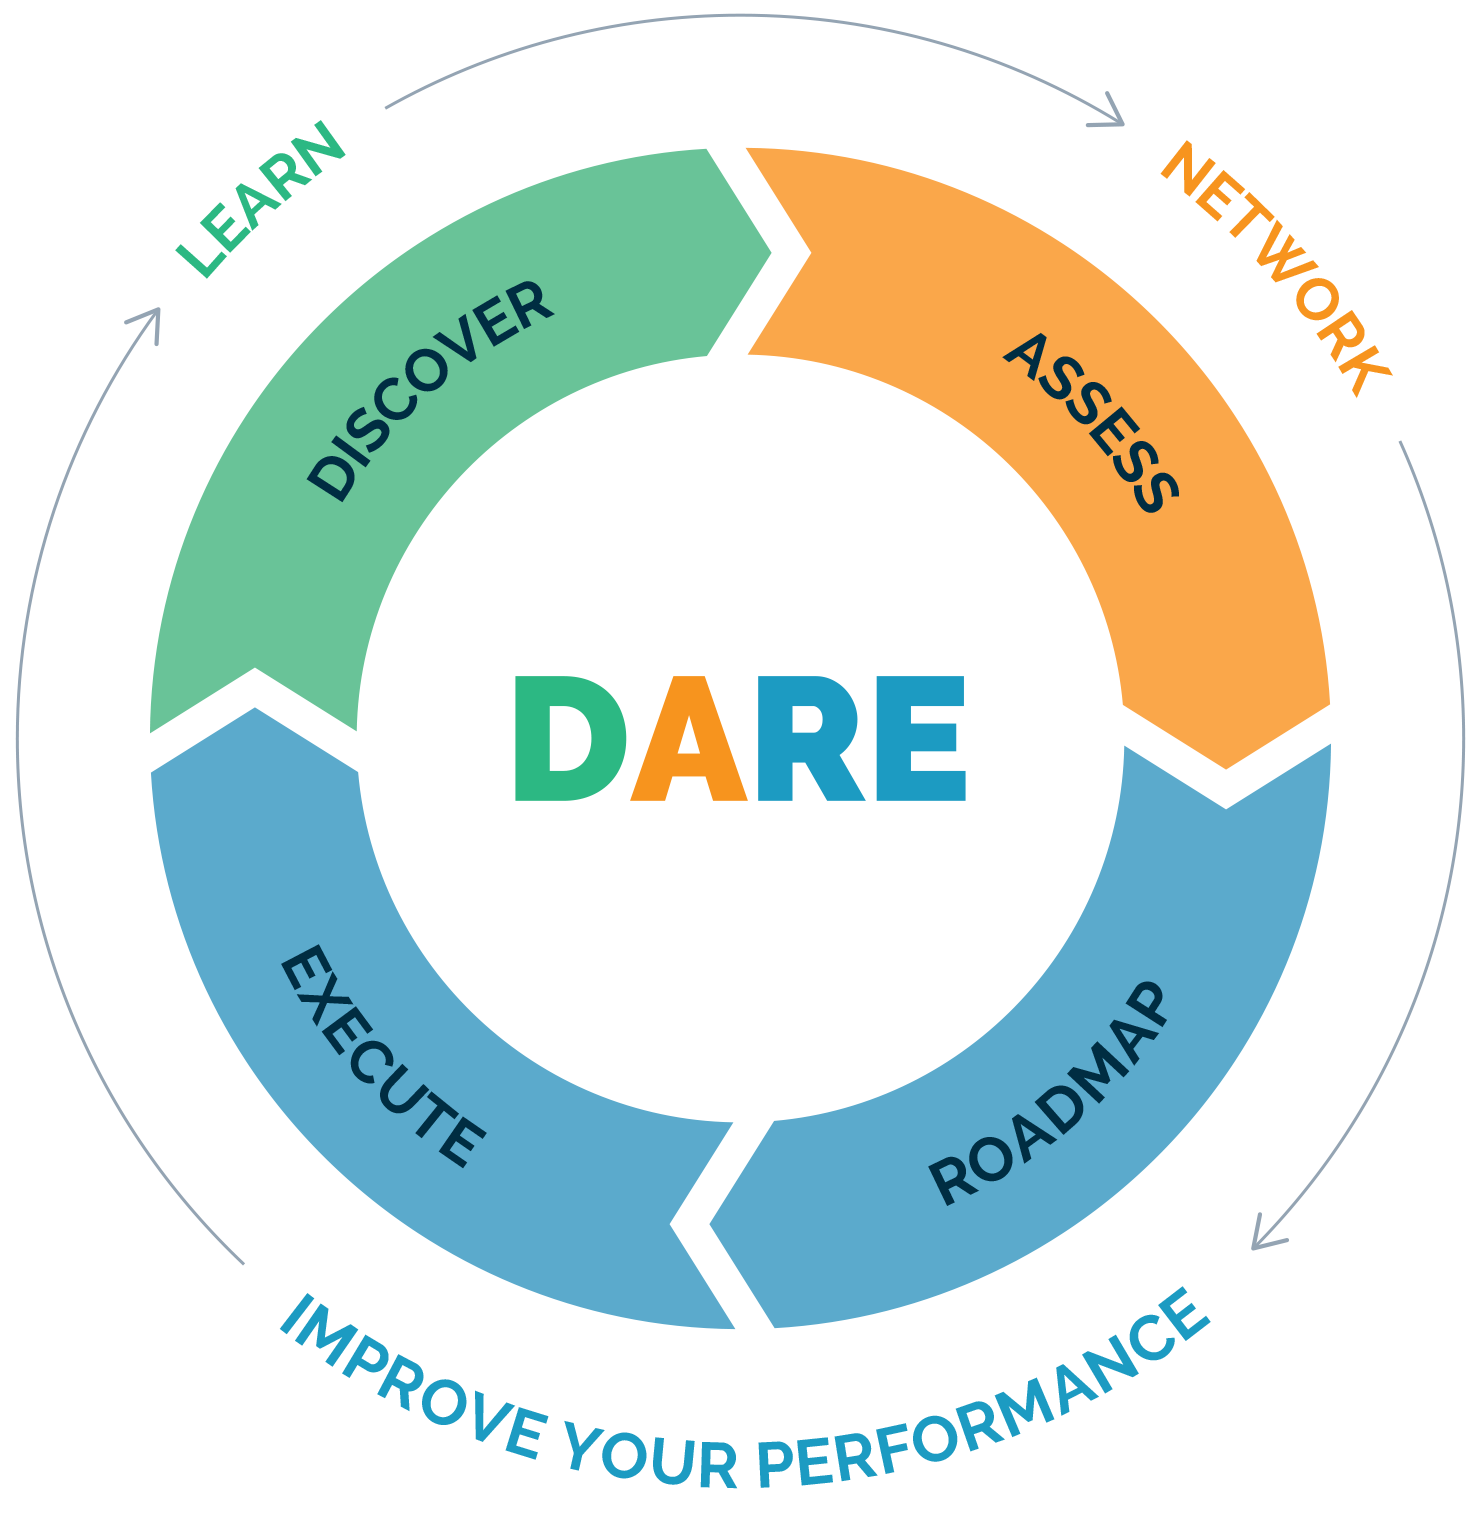 DARE Cycle